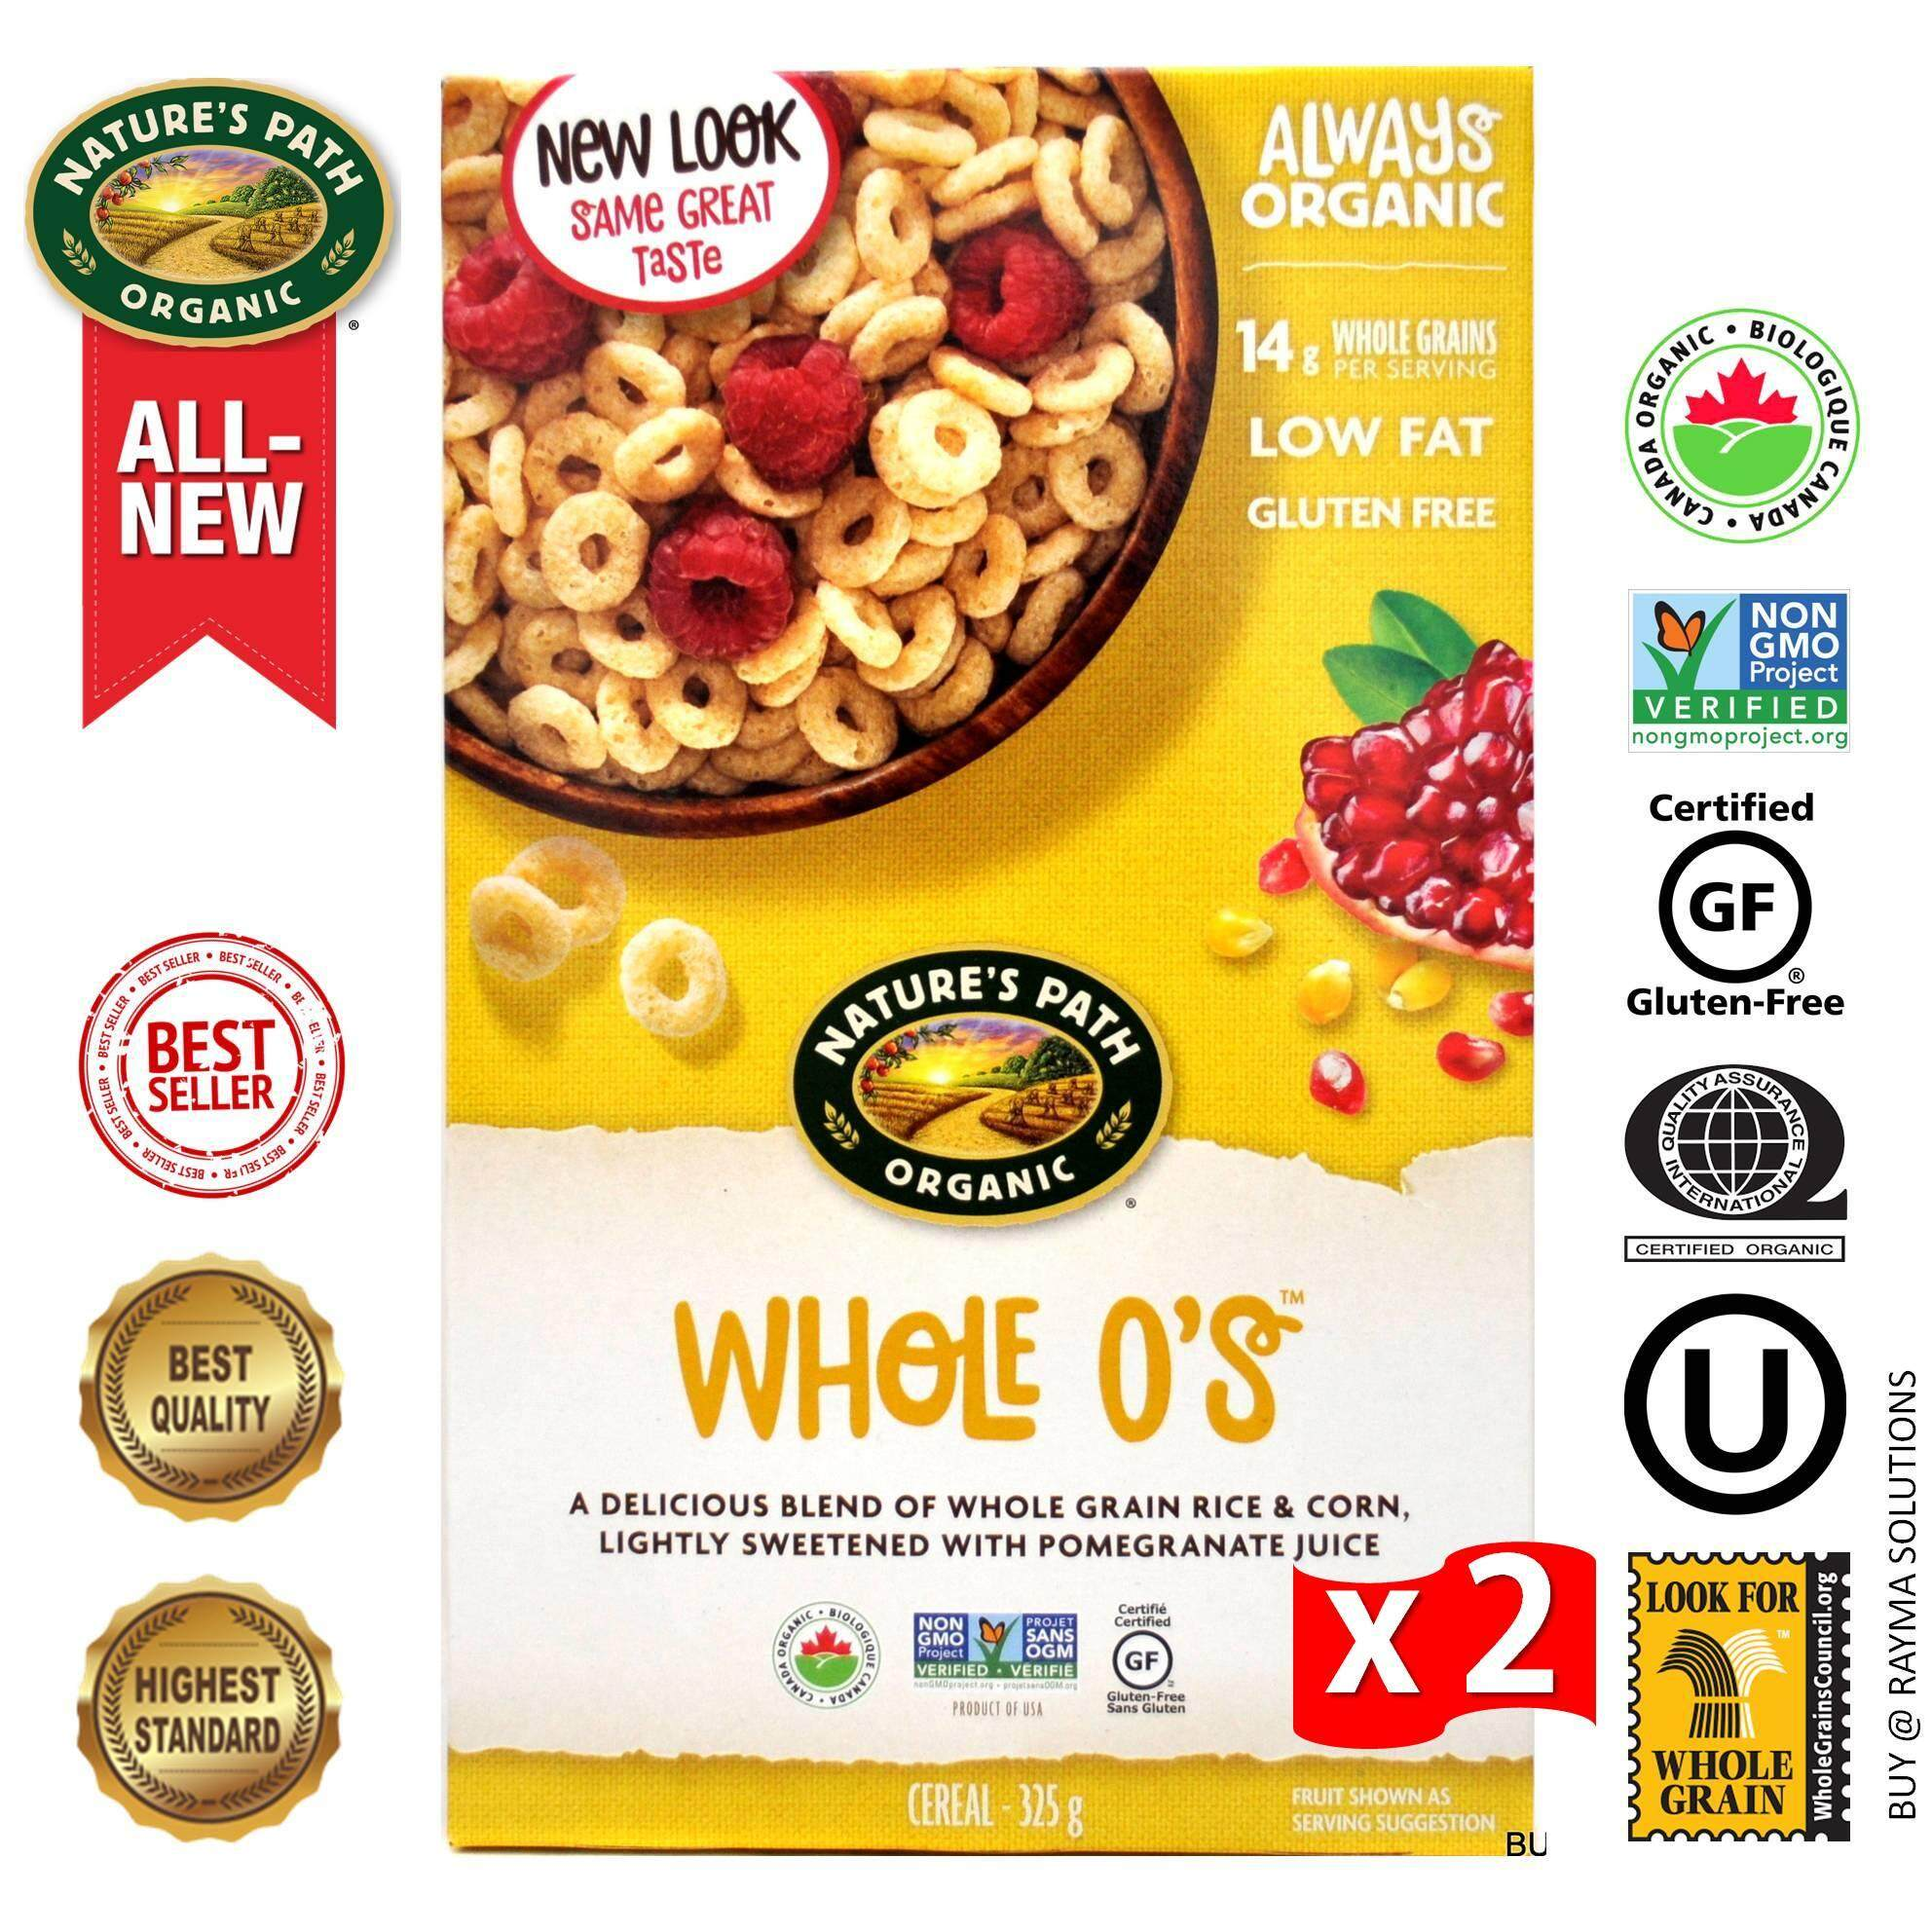 [$AVE More!] NATURE'S PATH ORGANIC Whole O's Cereal, Gluten Free, 325g - Twin Pack